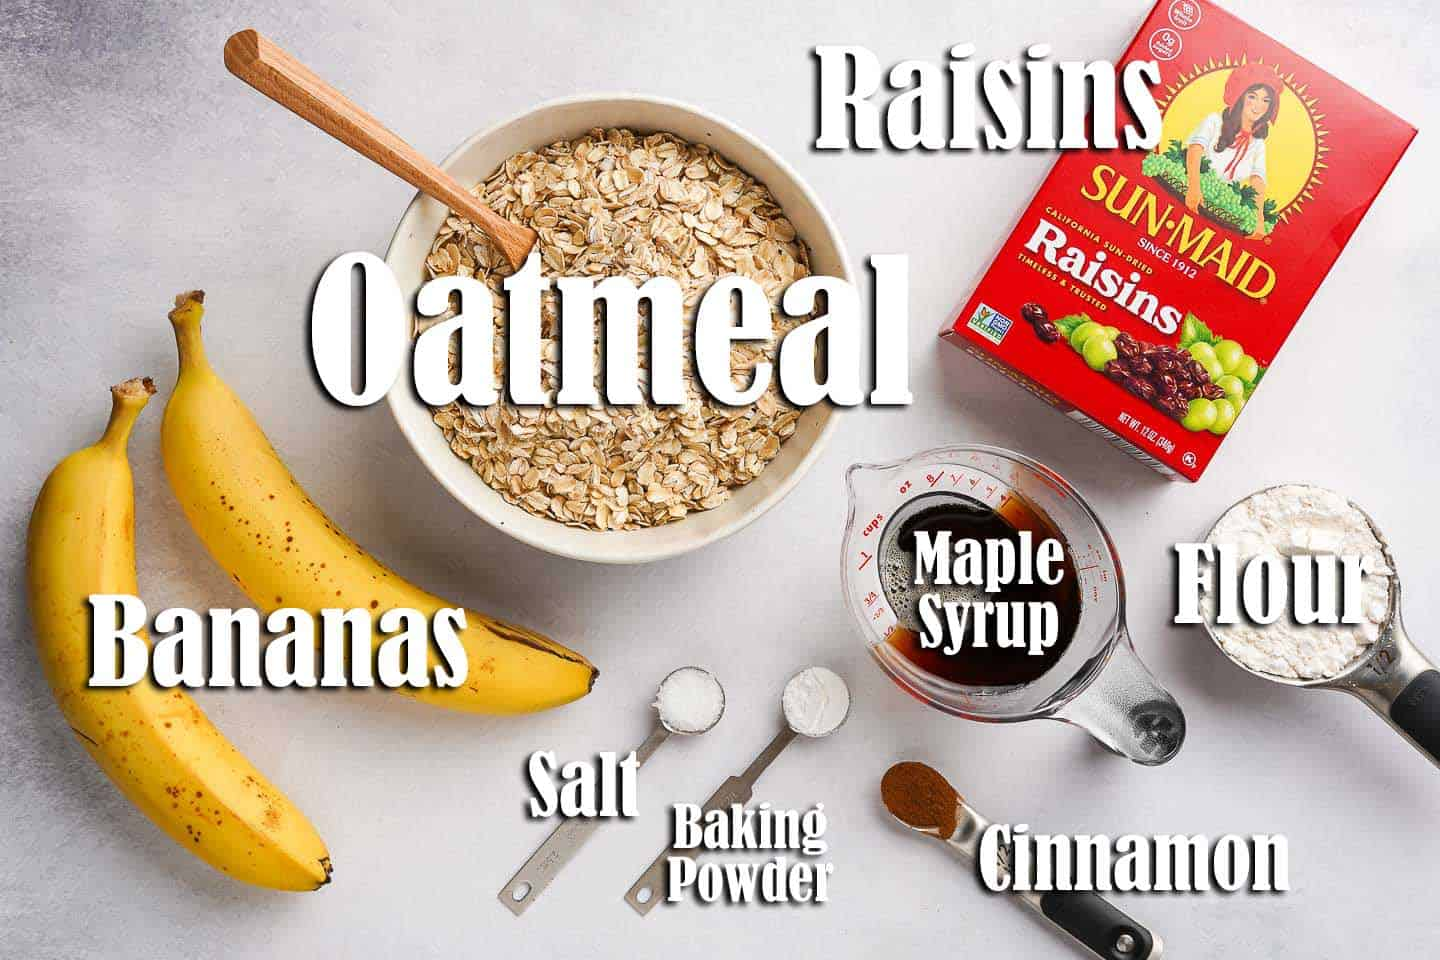 Easy Oatmeal Raisin Breakfast Bars Ingredients on Counter